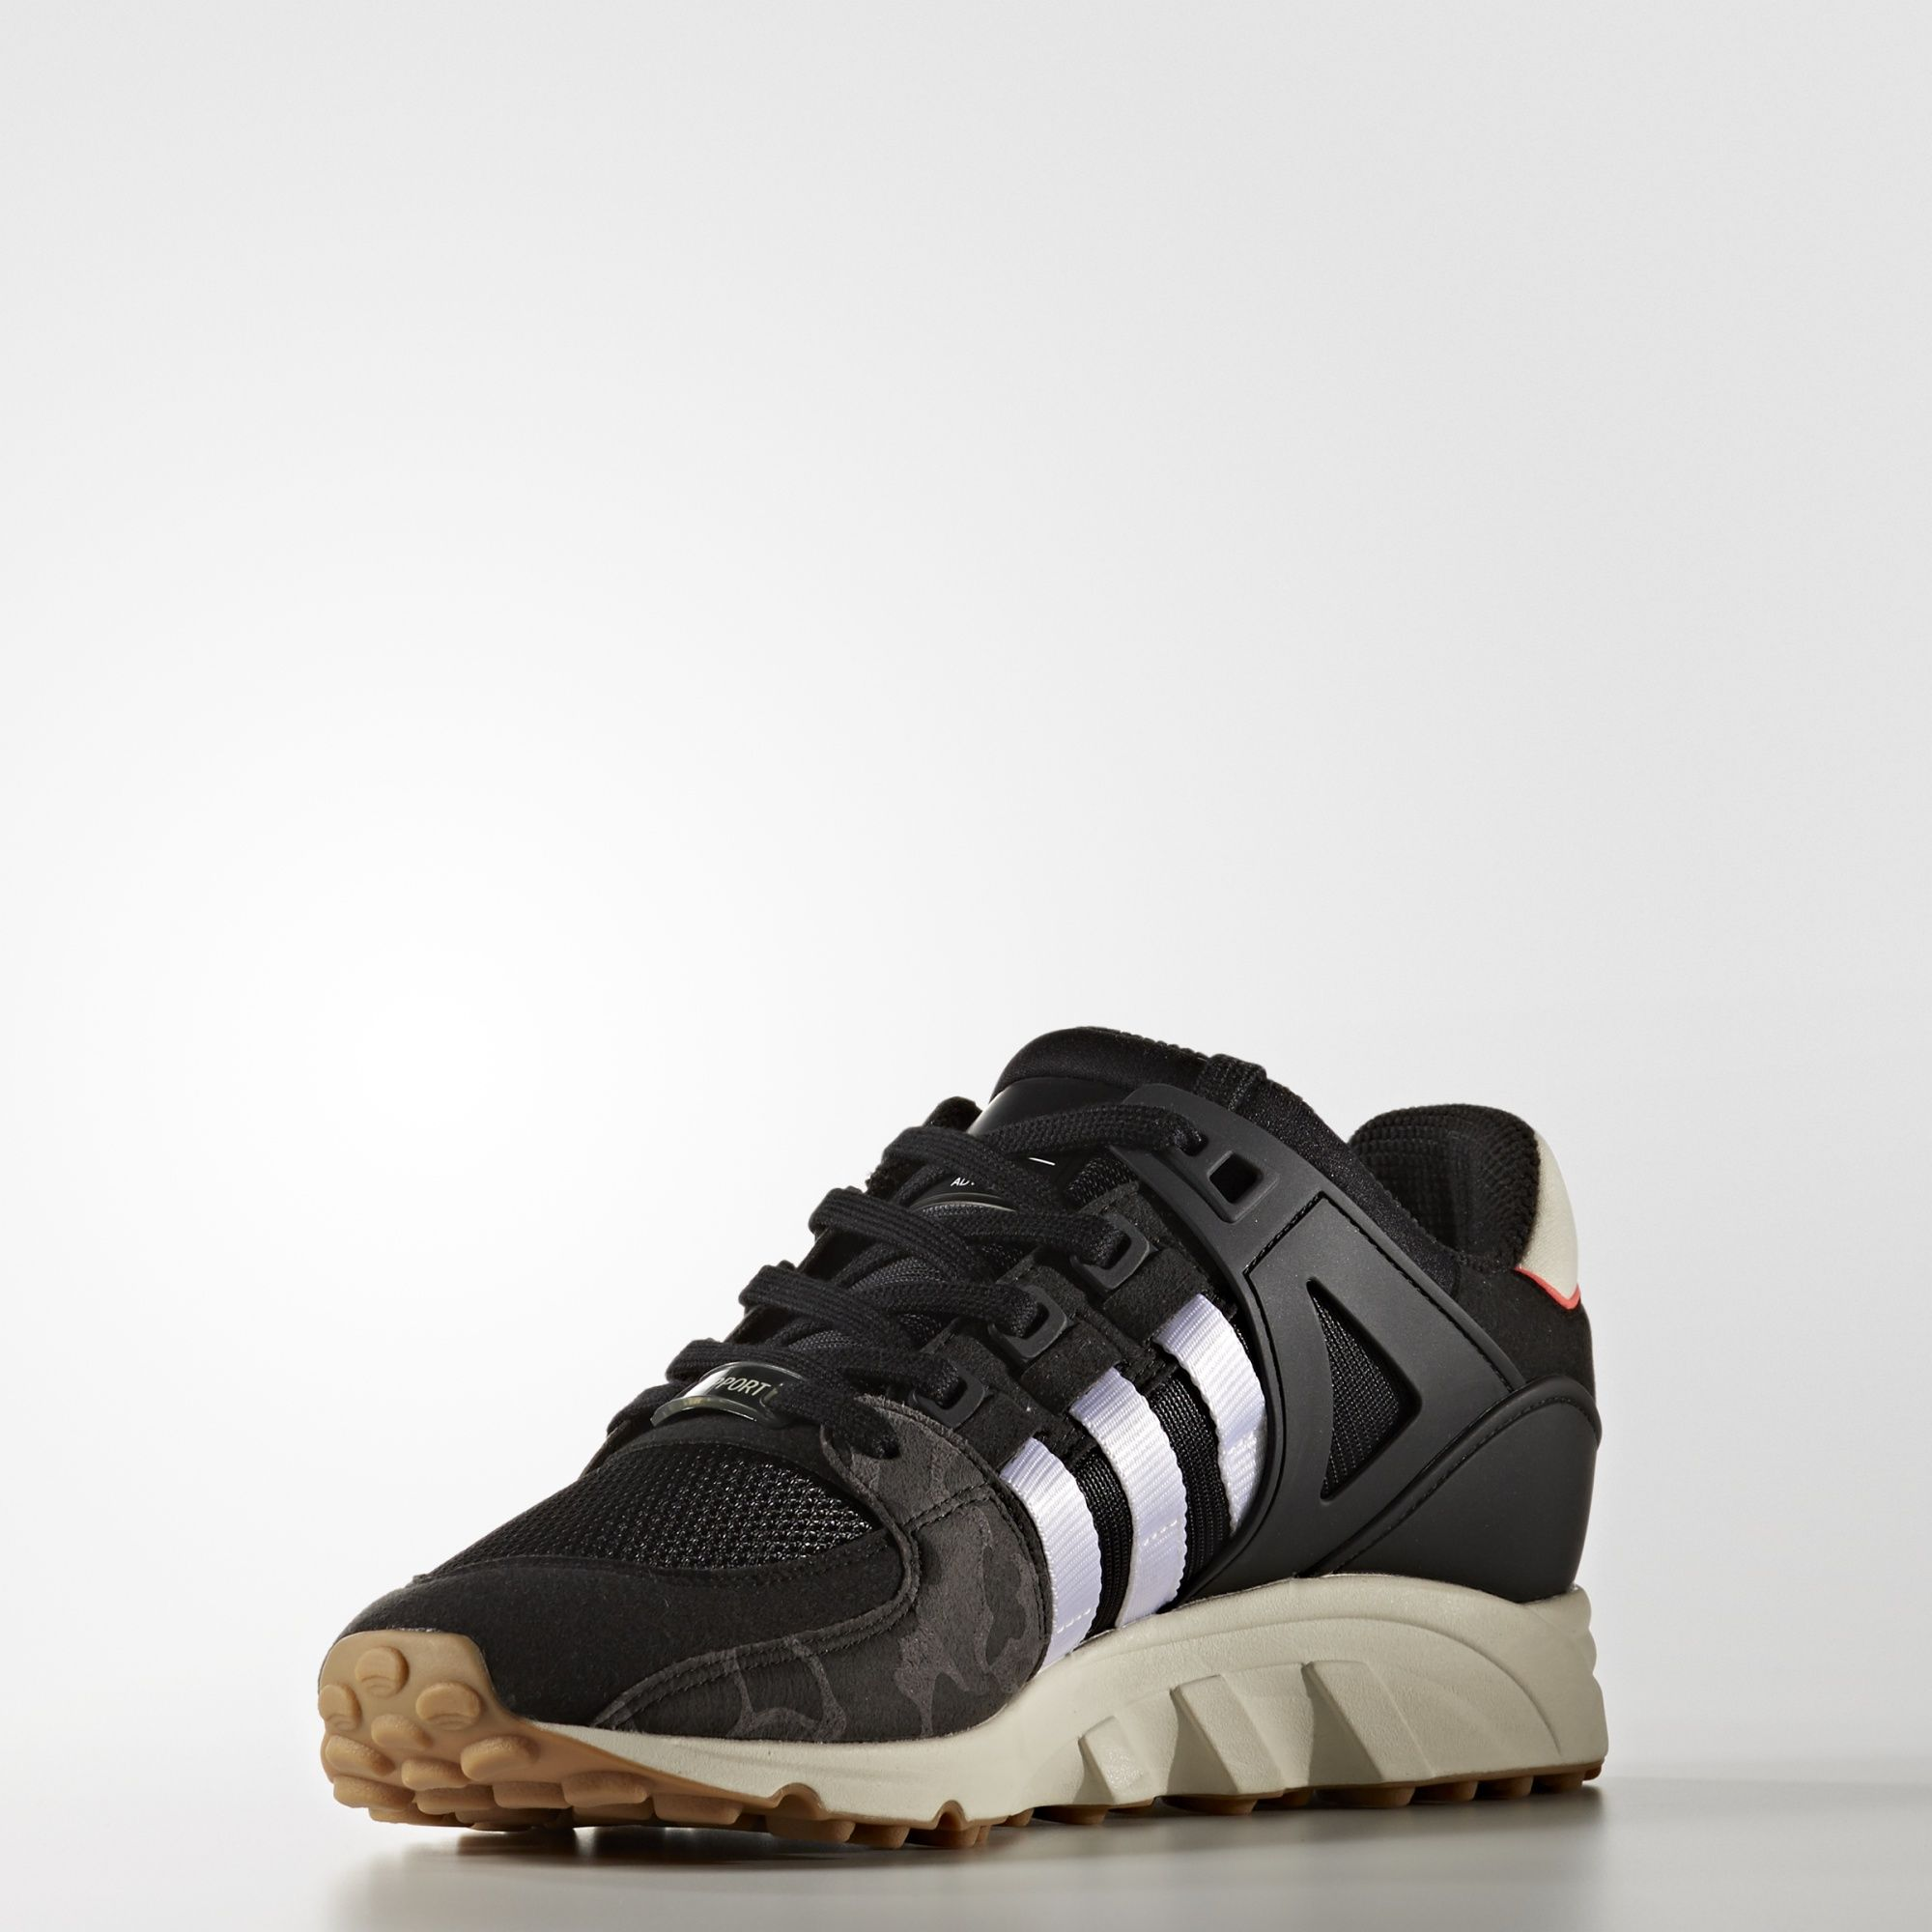 adidas EQT Support RF Black Camo BB1324 2